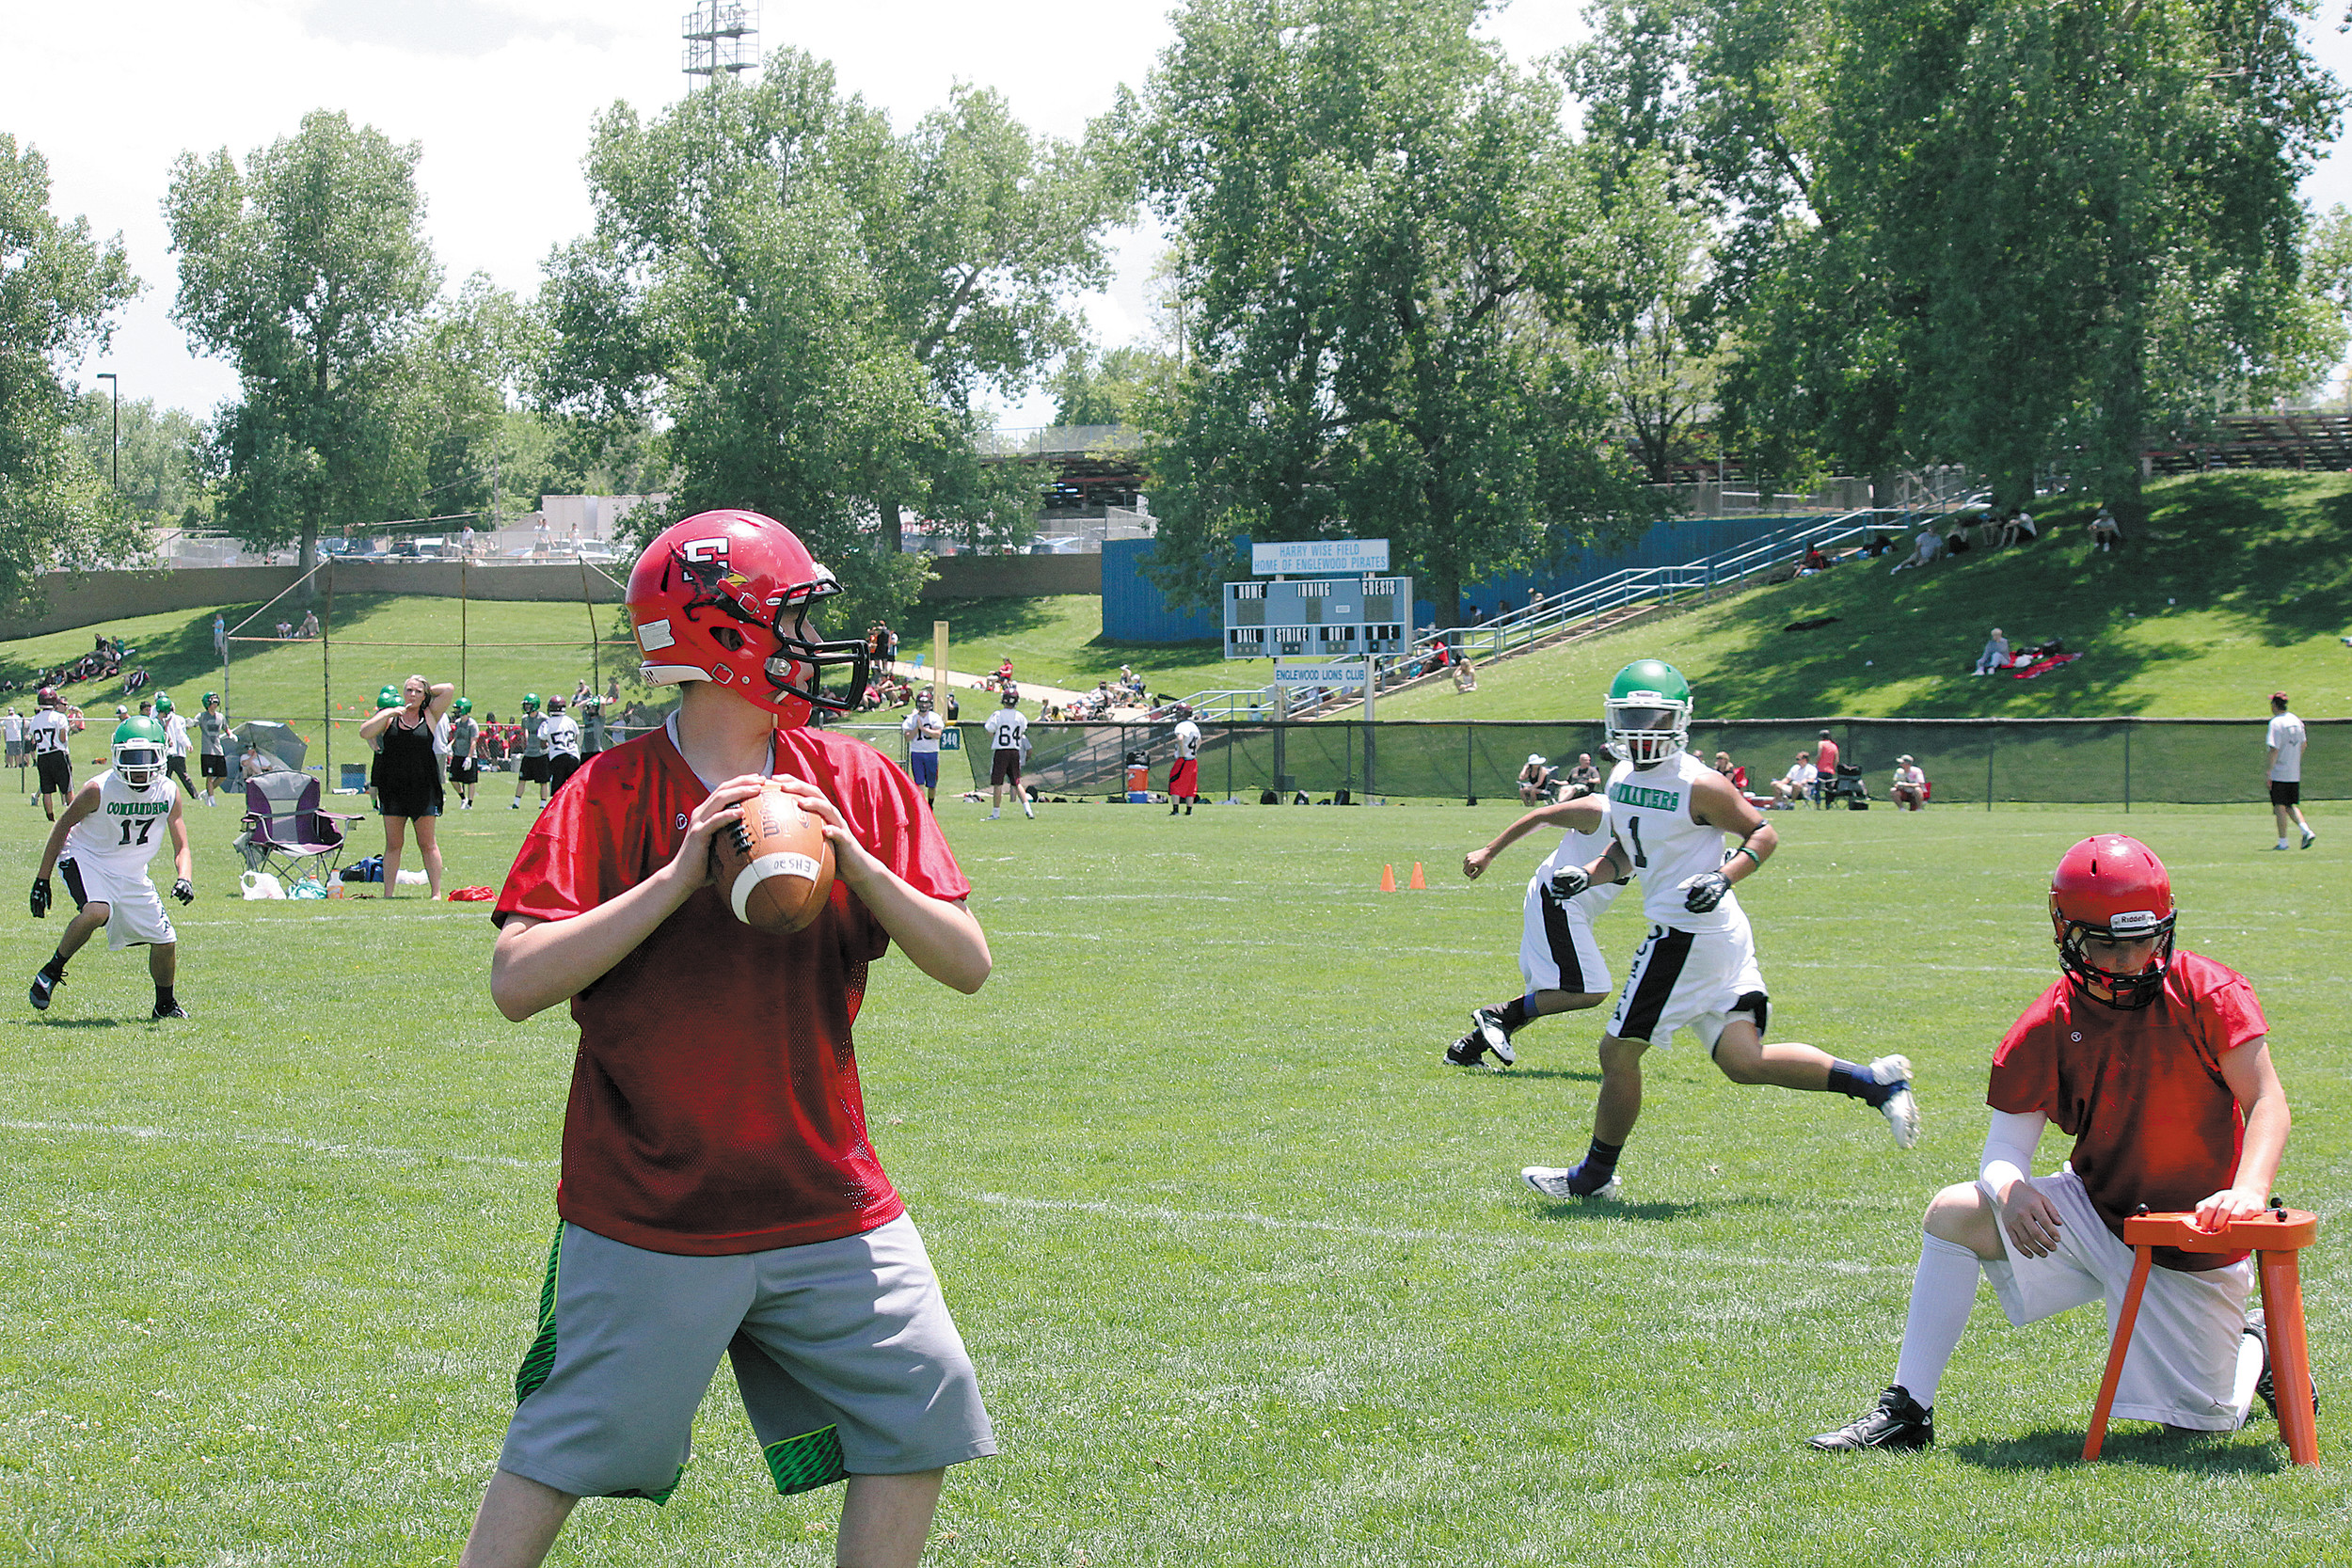 Elizabeth quarterback candidate Cameron Moon looks for a receiver during the 7-on-7 all-passing tournament May 31 at Englewood High School. The Cardinals advanced to the consolation finals, and wound up fourth in the 15-school field.